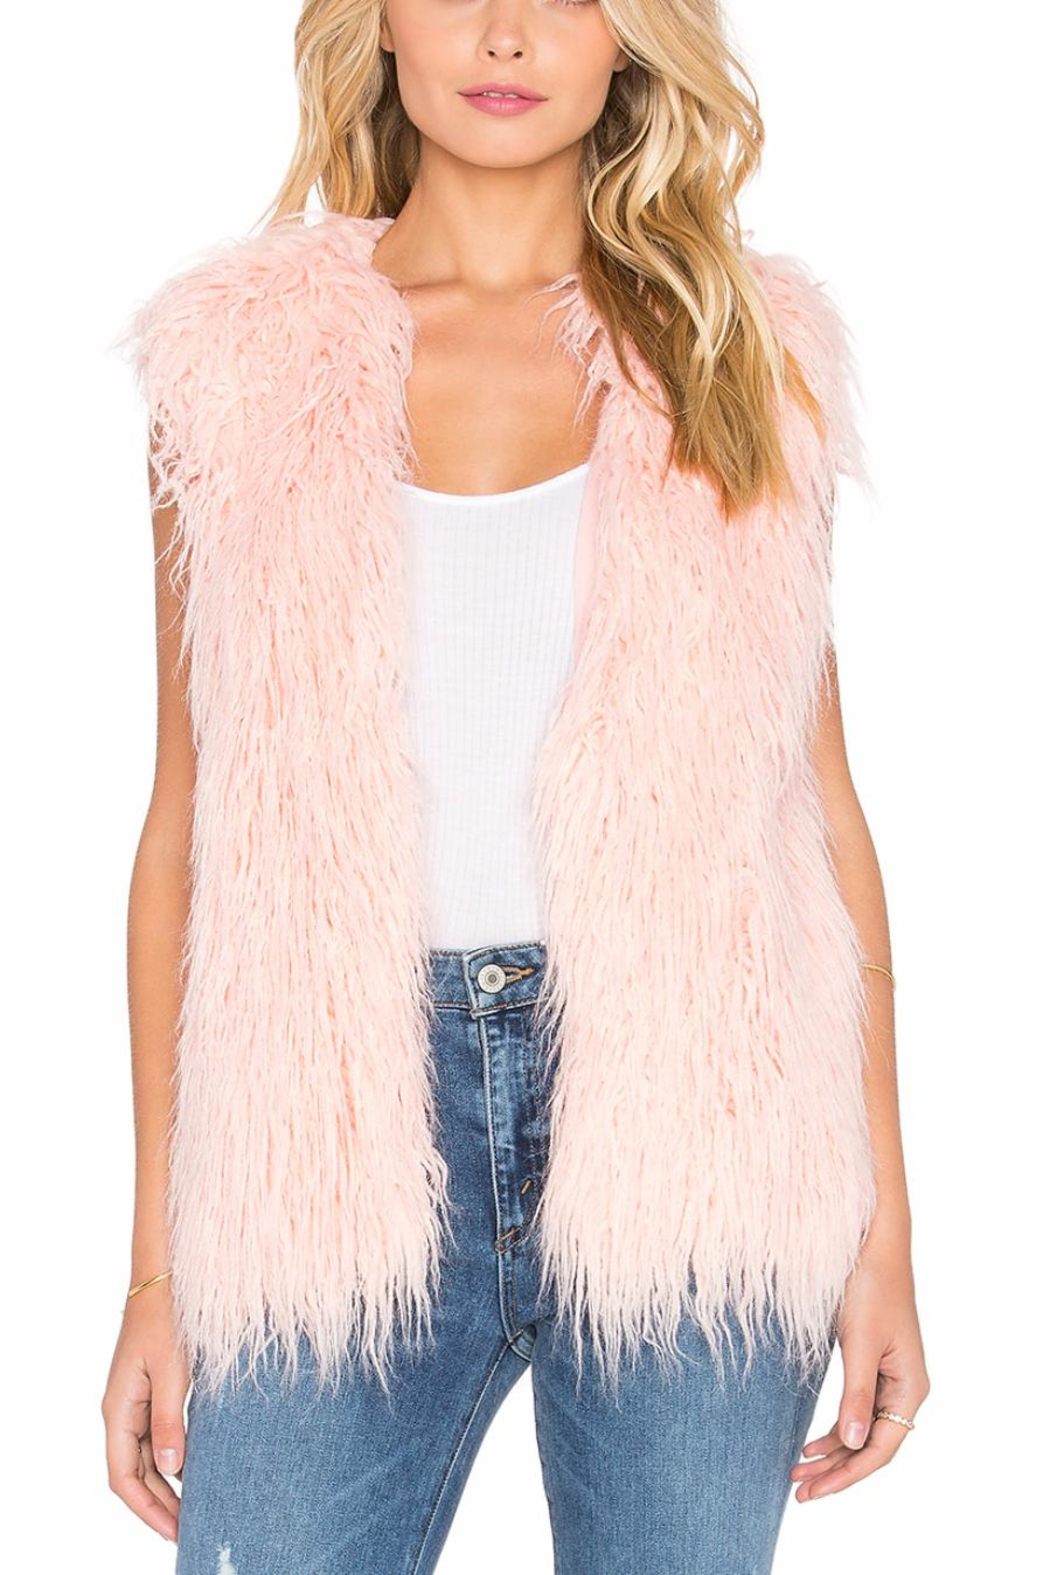 Apparel Love Cream Faux Vest - Main Image